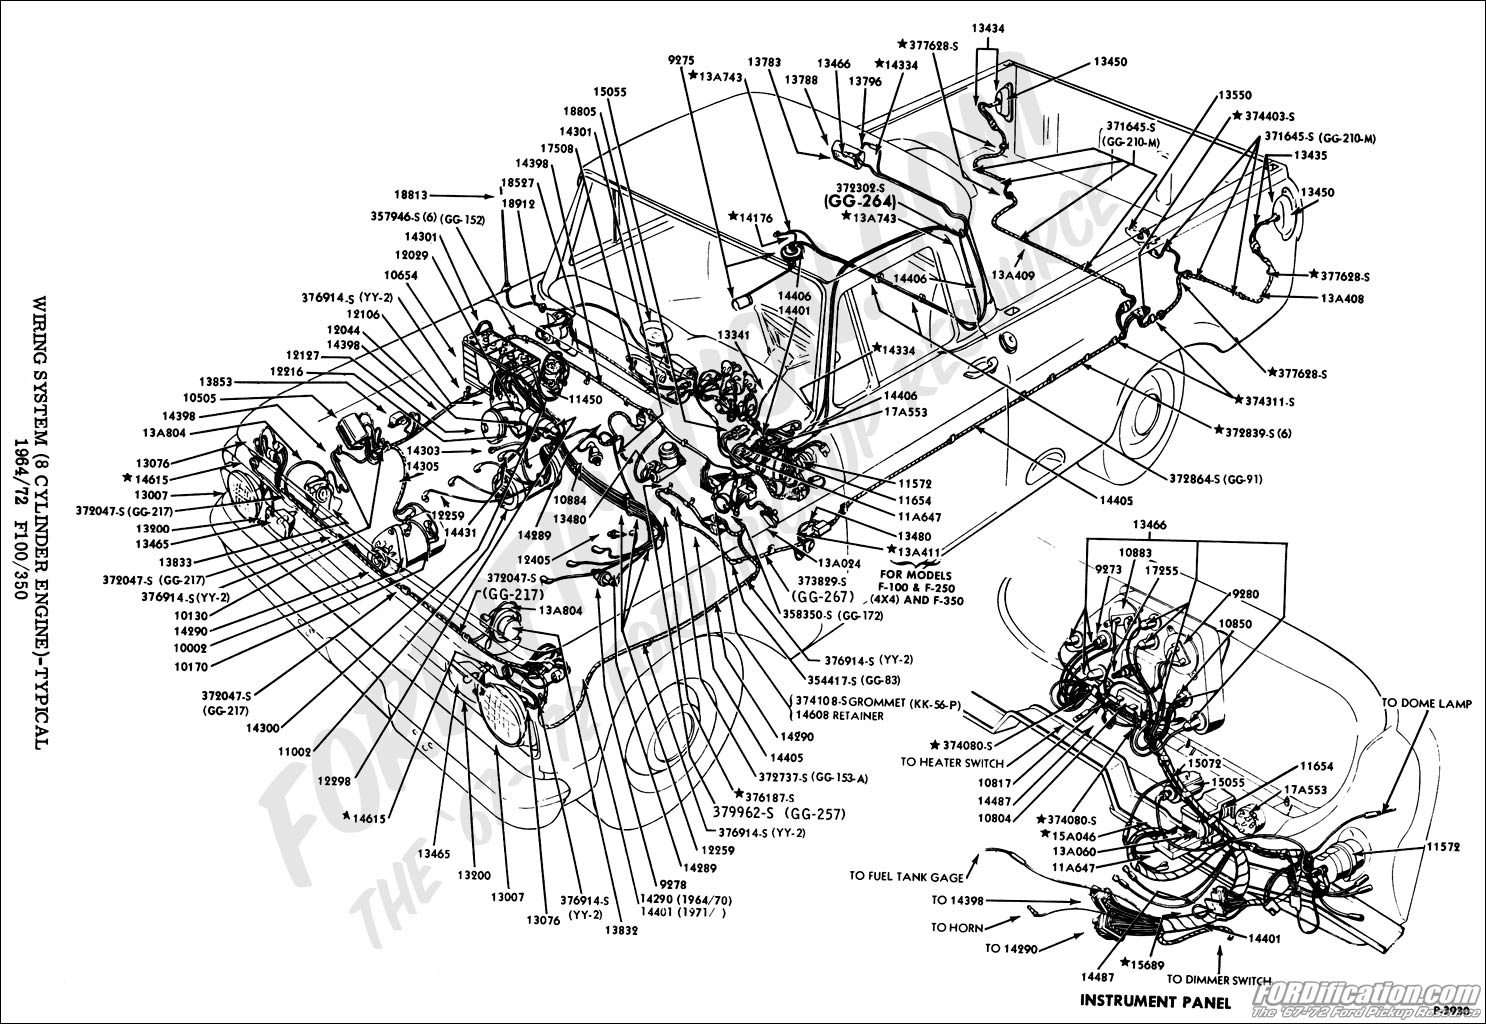 hight resolution of 1975 ford truck wiring diagrams just wiring data rh ag skiphire co uk 1949 ford truck